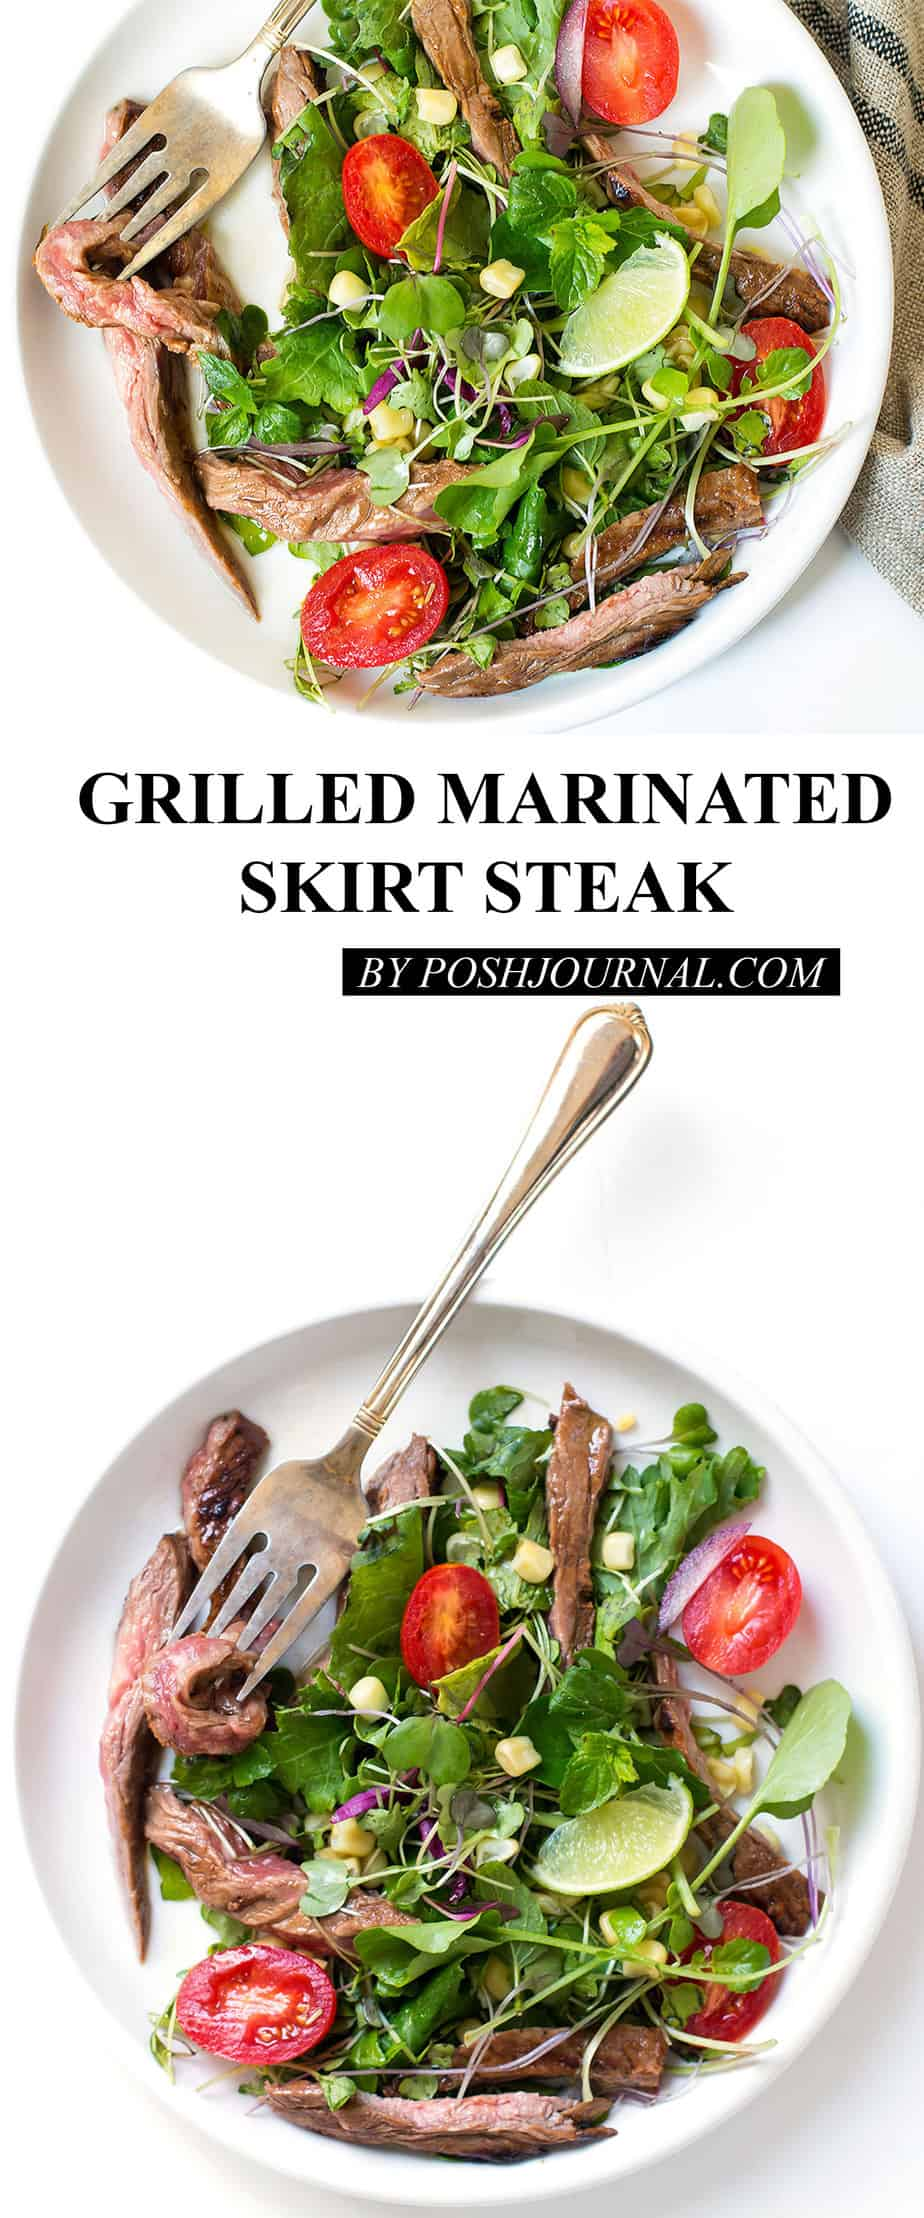 grilled-marinated-skirt-steak-recipe